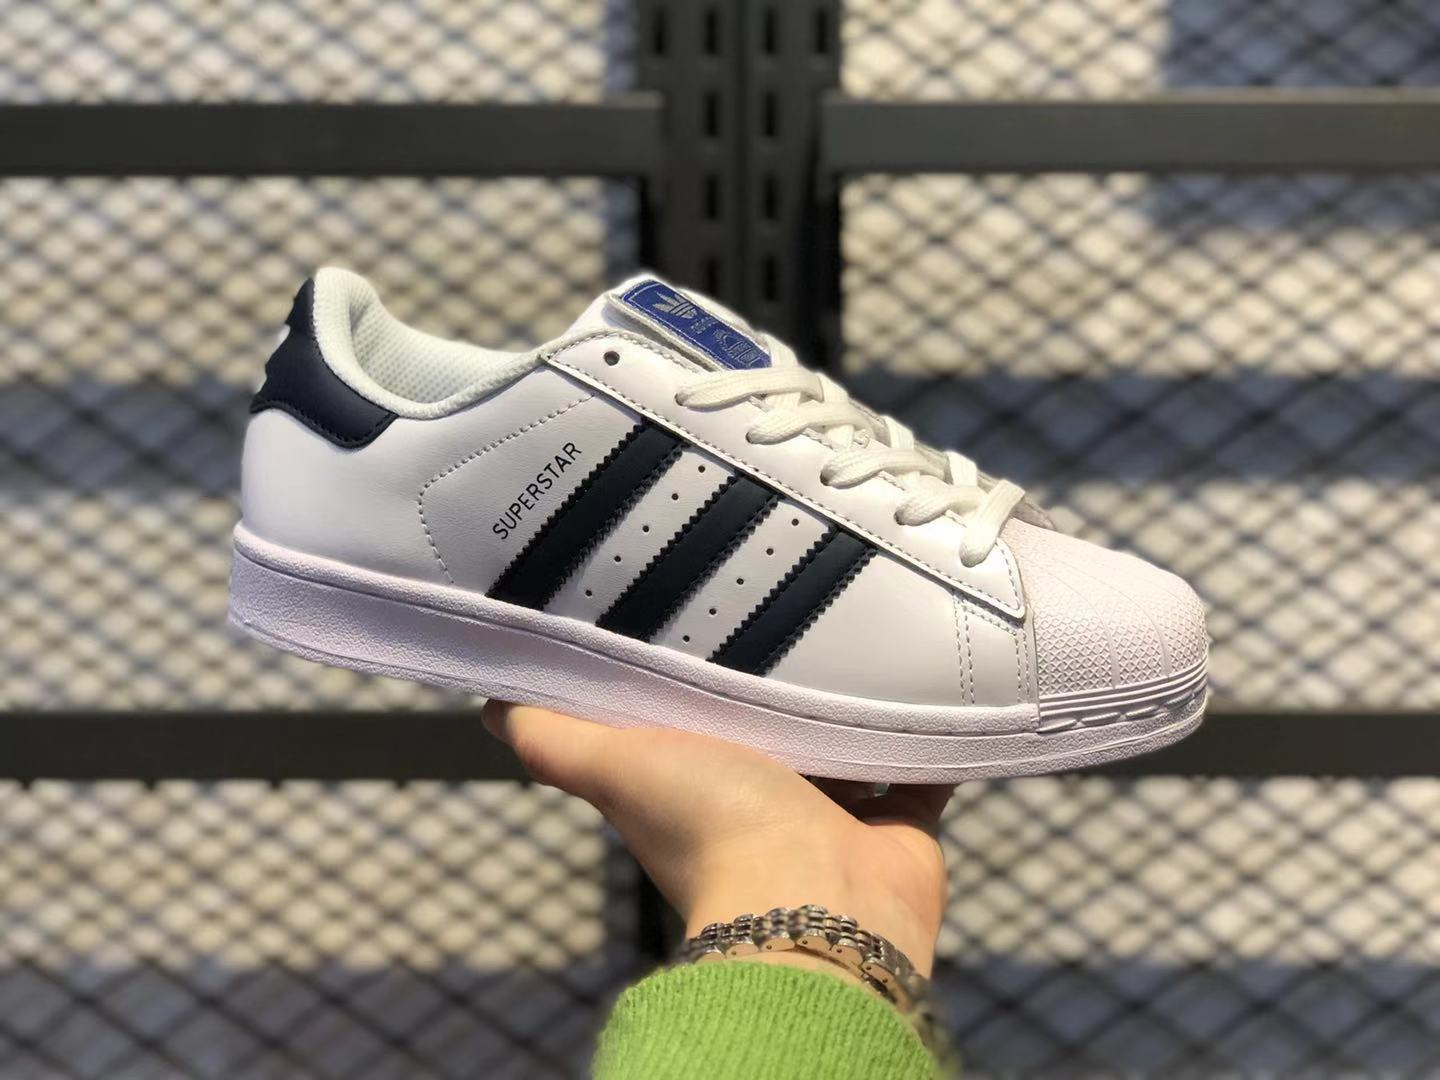 Adidas Superstar Cloud White/Collegiate Navy Skate Boarding Shoes FV3577